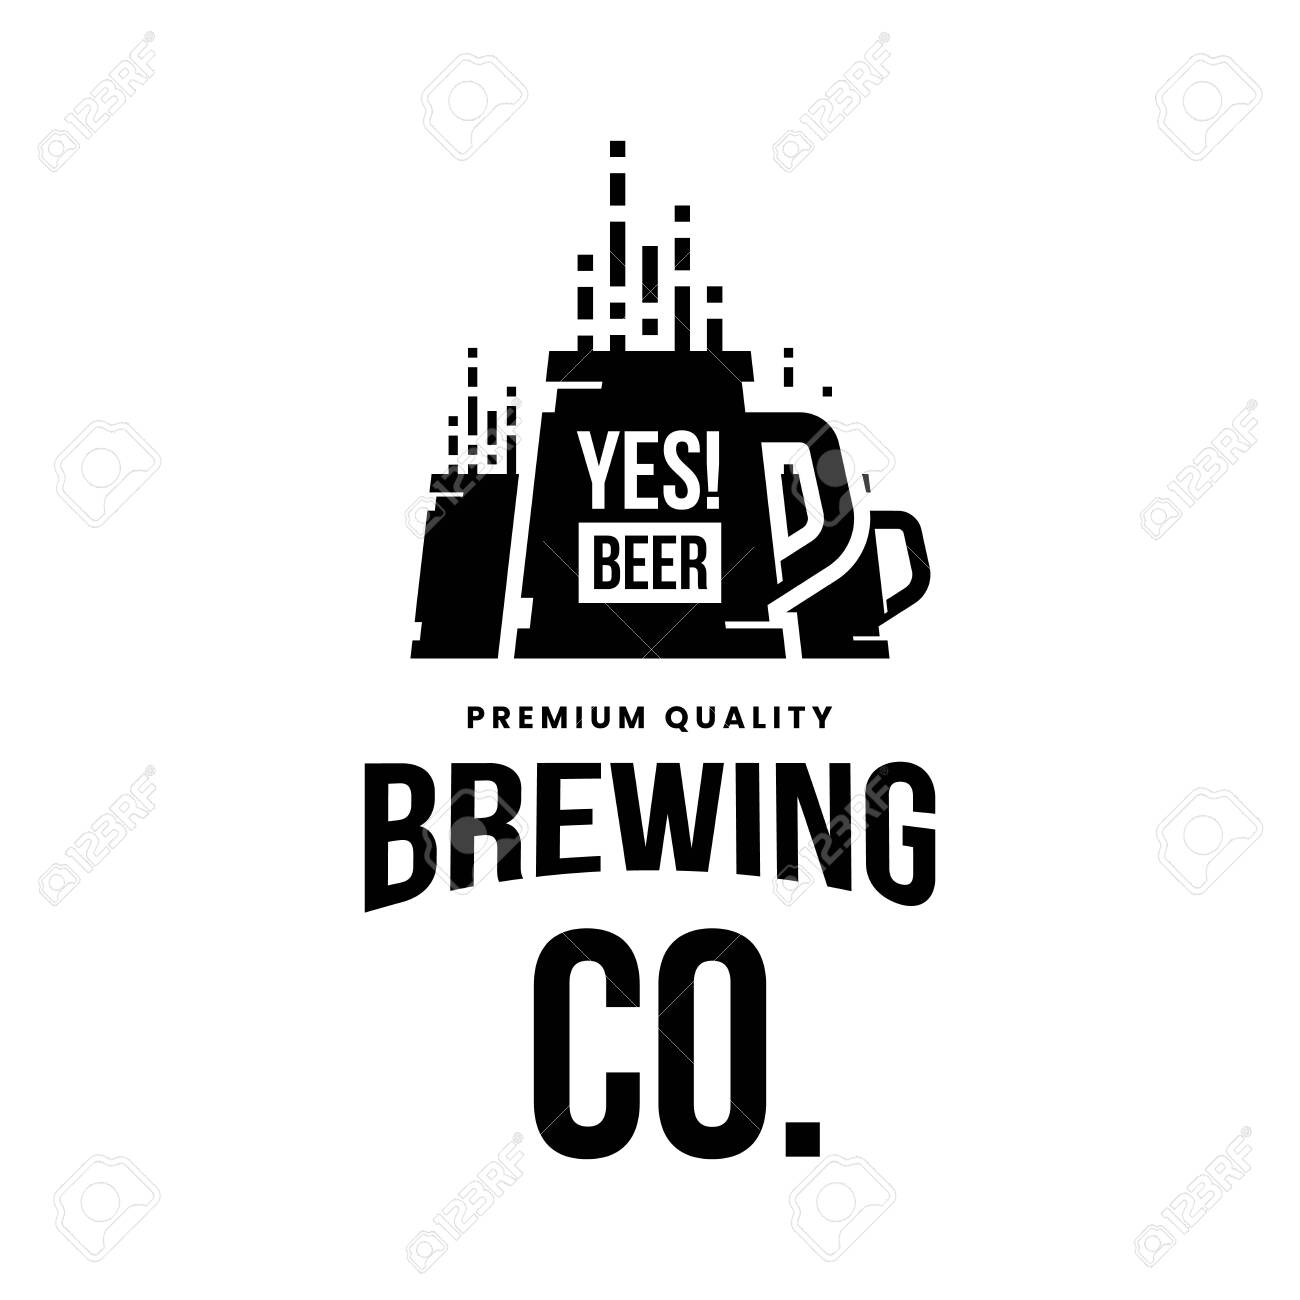 Modern craft beer drink vector logo sign for bar, pub, store, brewhouse or brewery isolated on white background. Premium quality mug logotype illustration. Brewing fest fashion t-shirt badge design. - 120438754